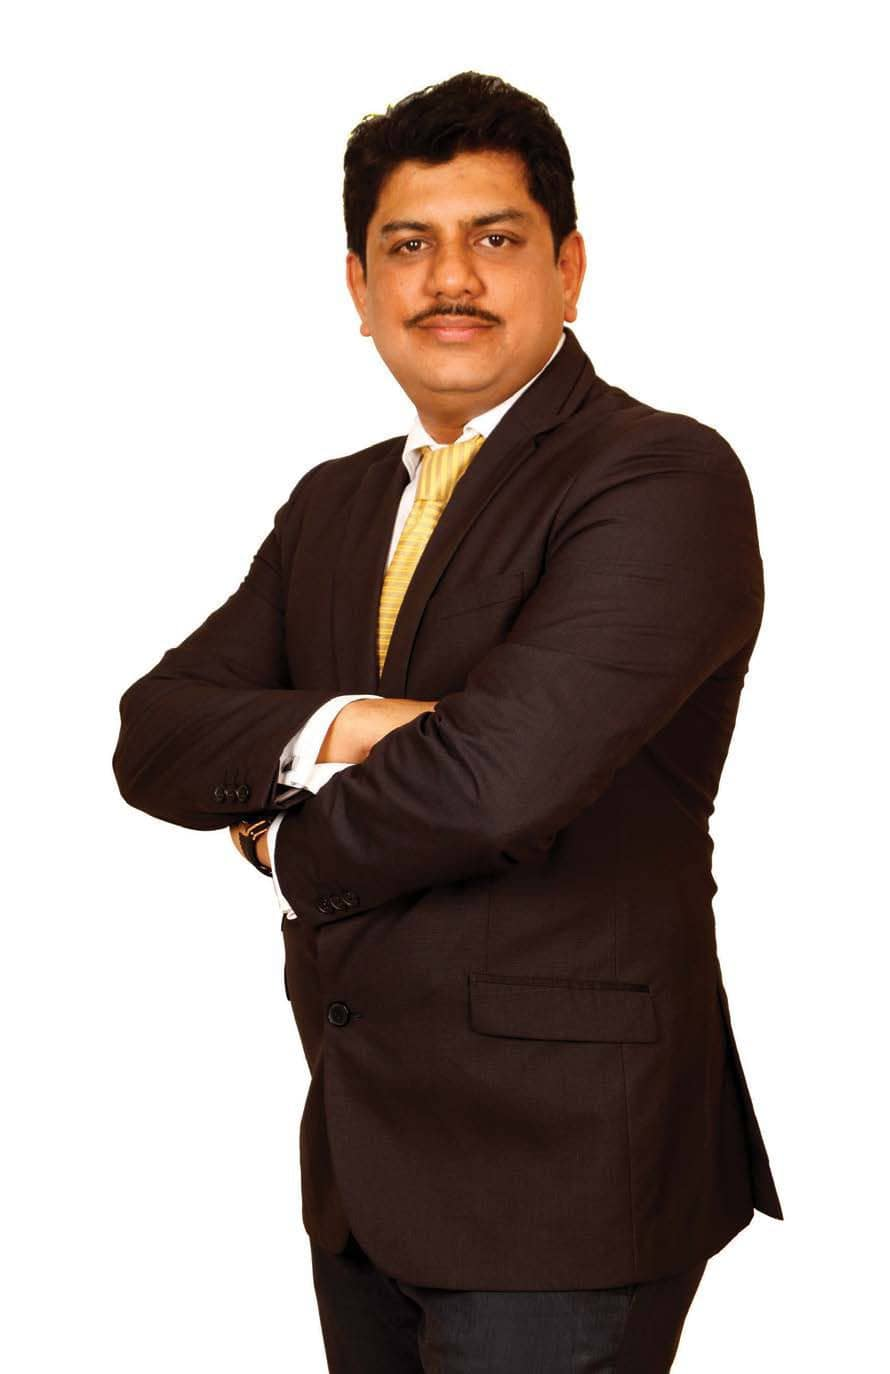 'We Want To Be The Fastest FMCG Brand To Reach Rs 500 Crore